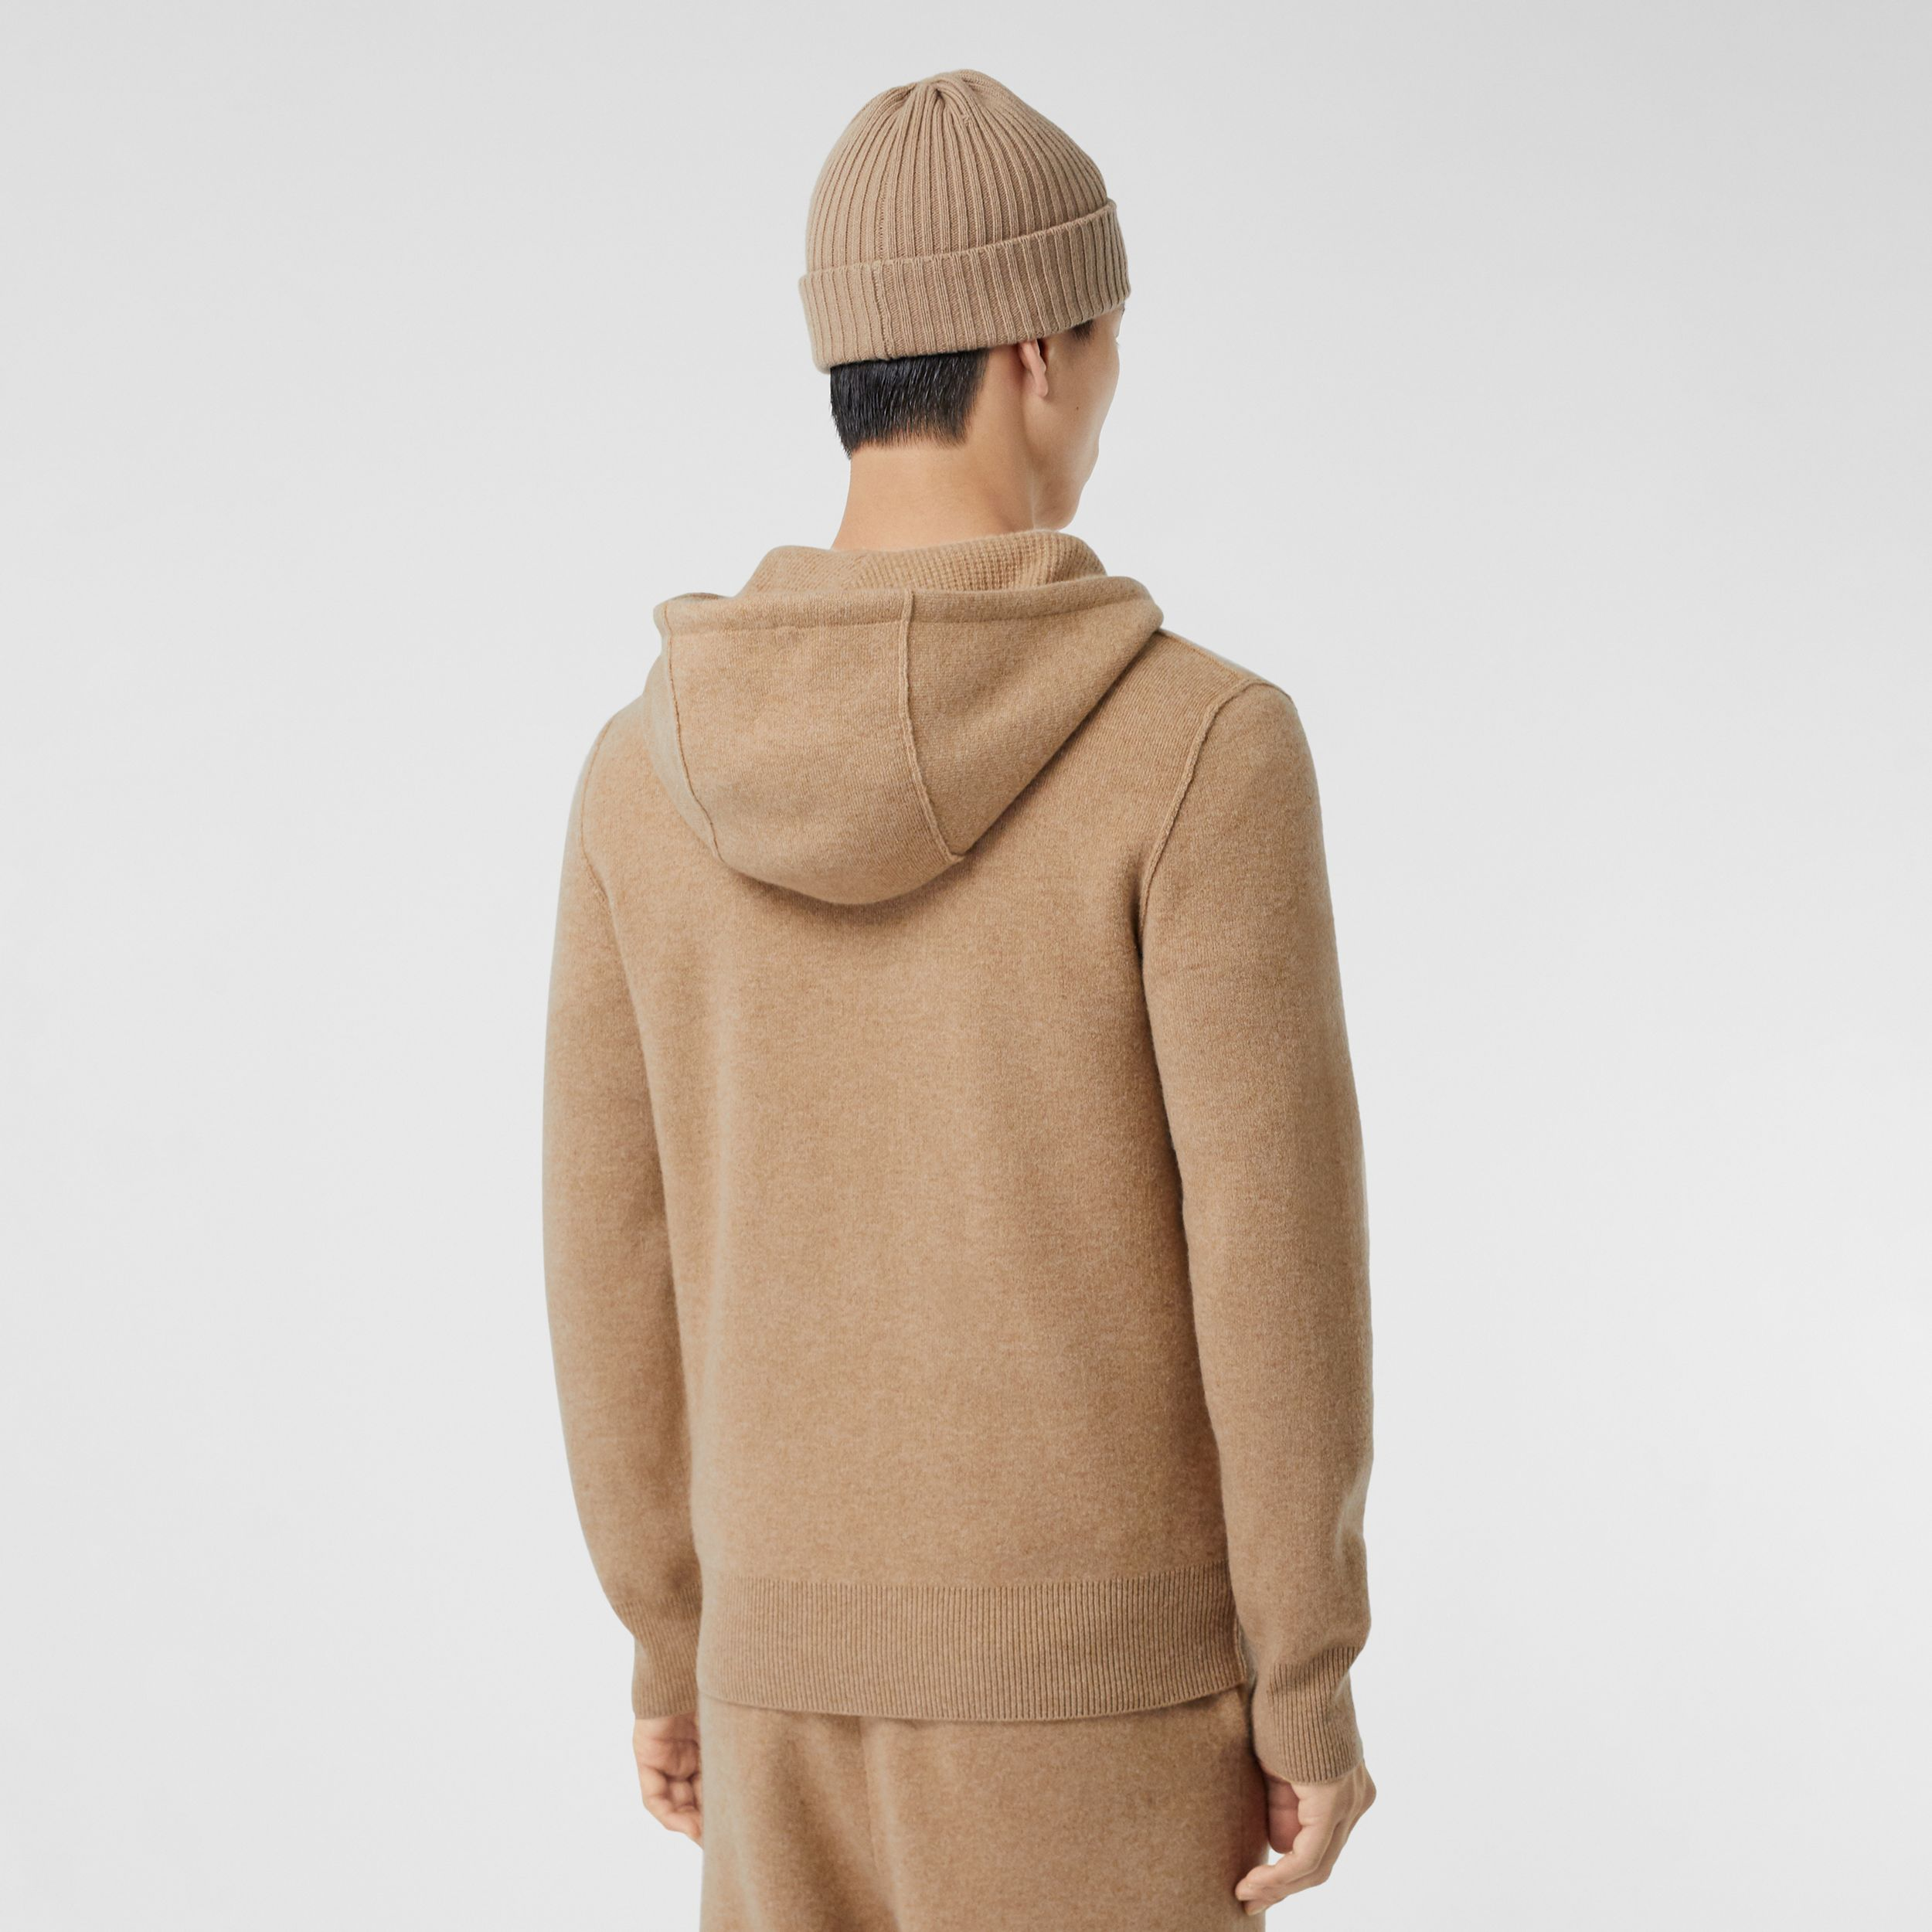 Monogram Motif Cashmere Blend Hooded Top in Pale Coffee - Men | Burberry Australia - 3